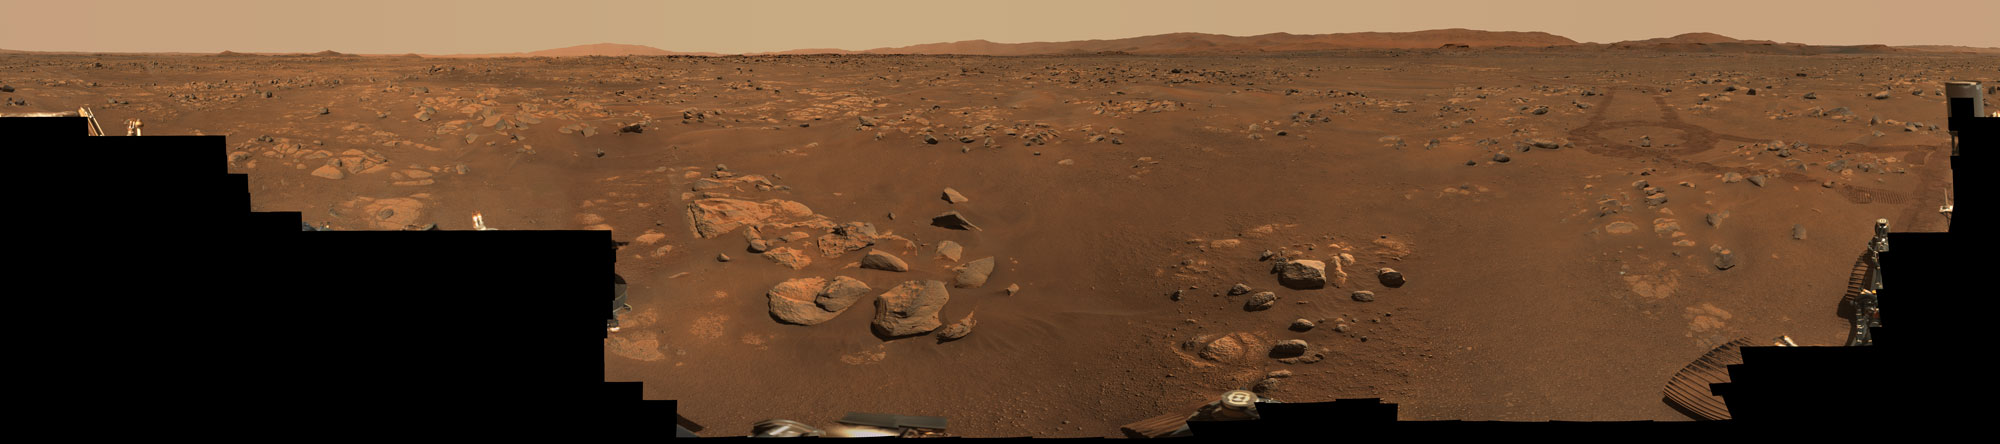 Perseverance Begins First Science Campaign on Mars